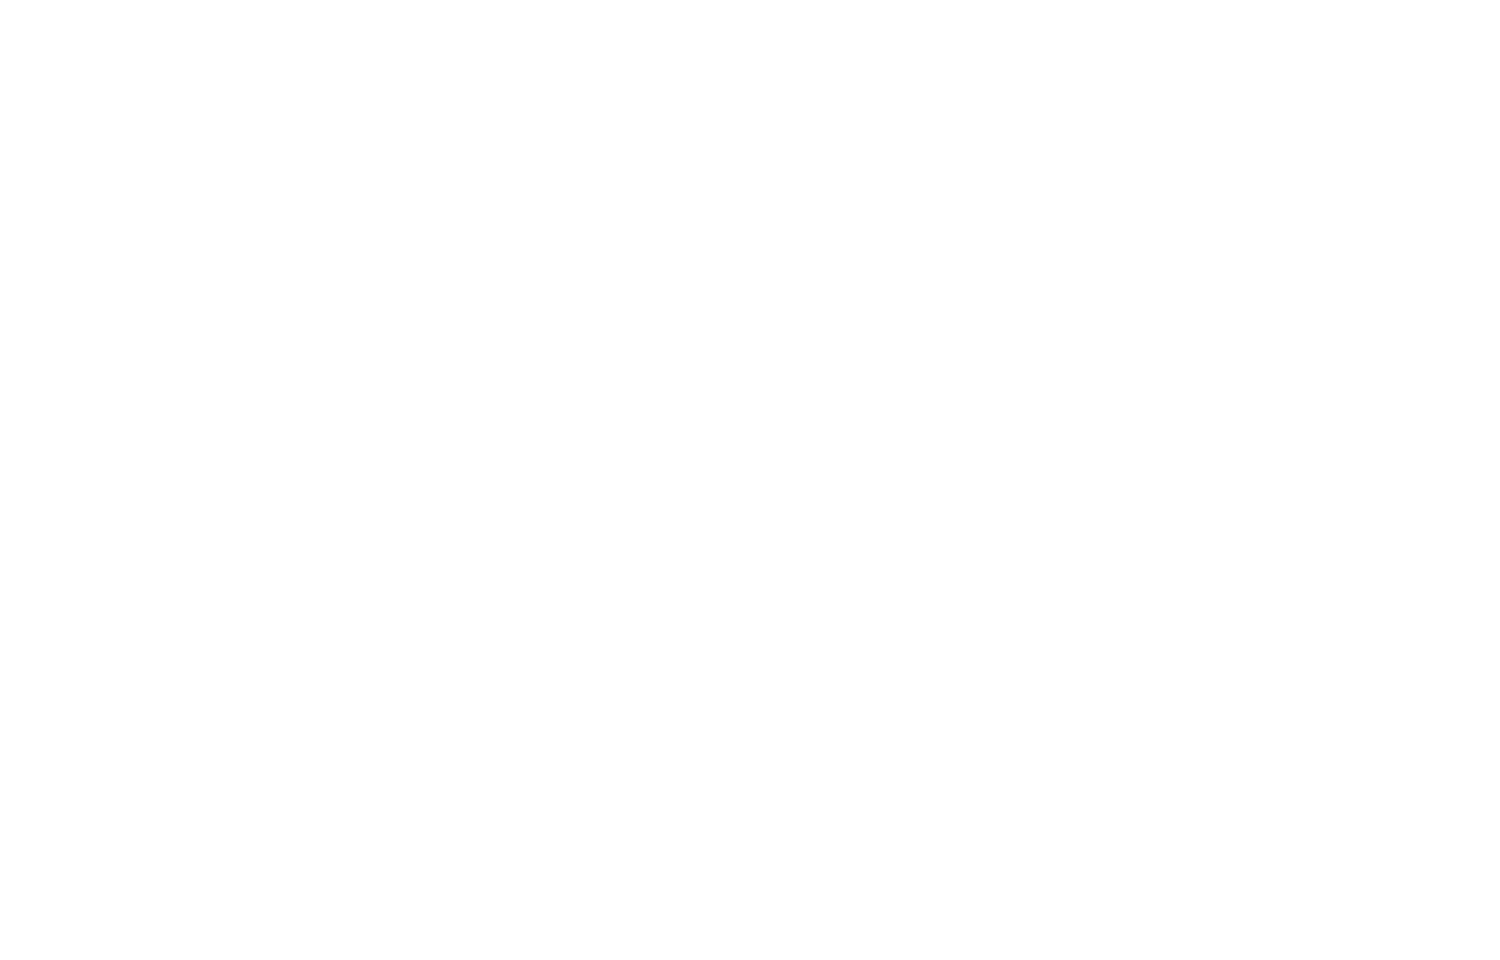 The Costa Group